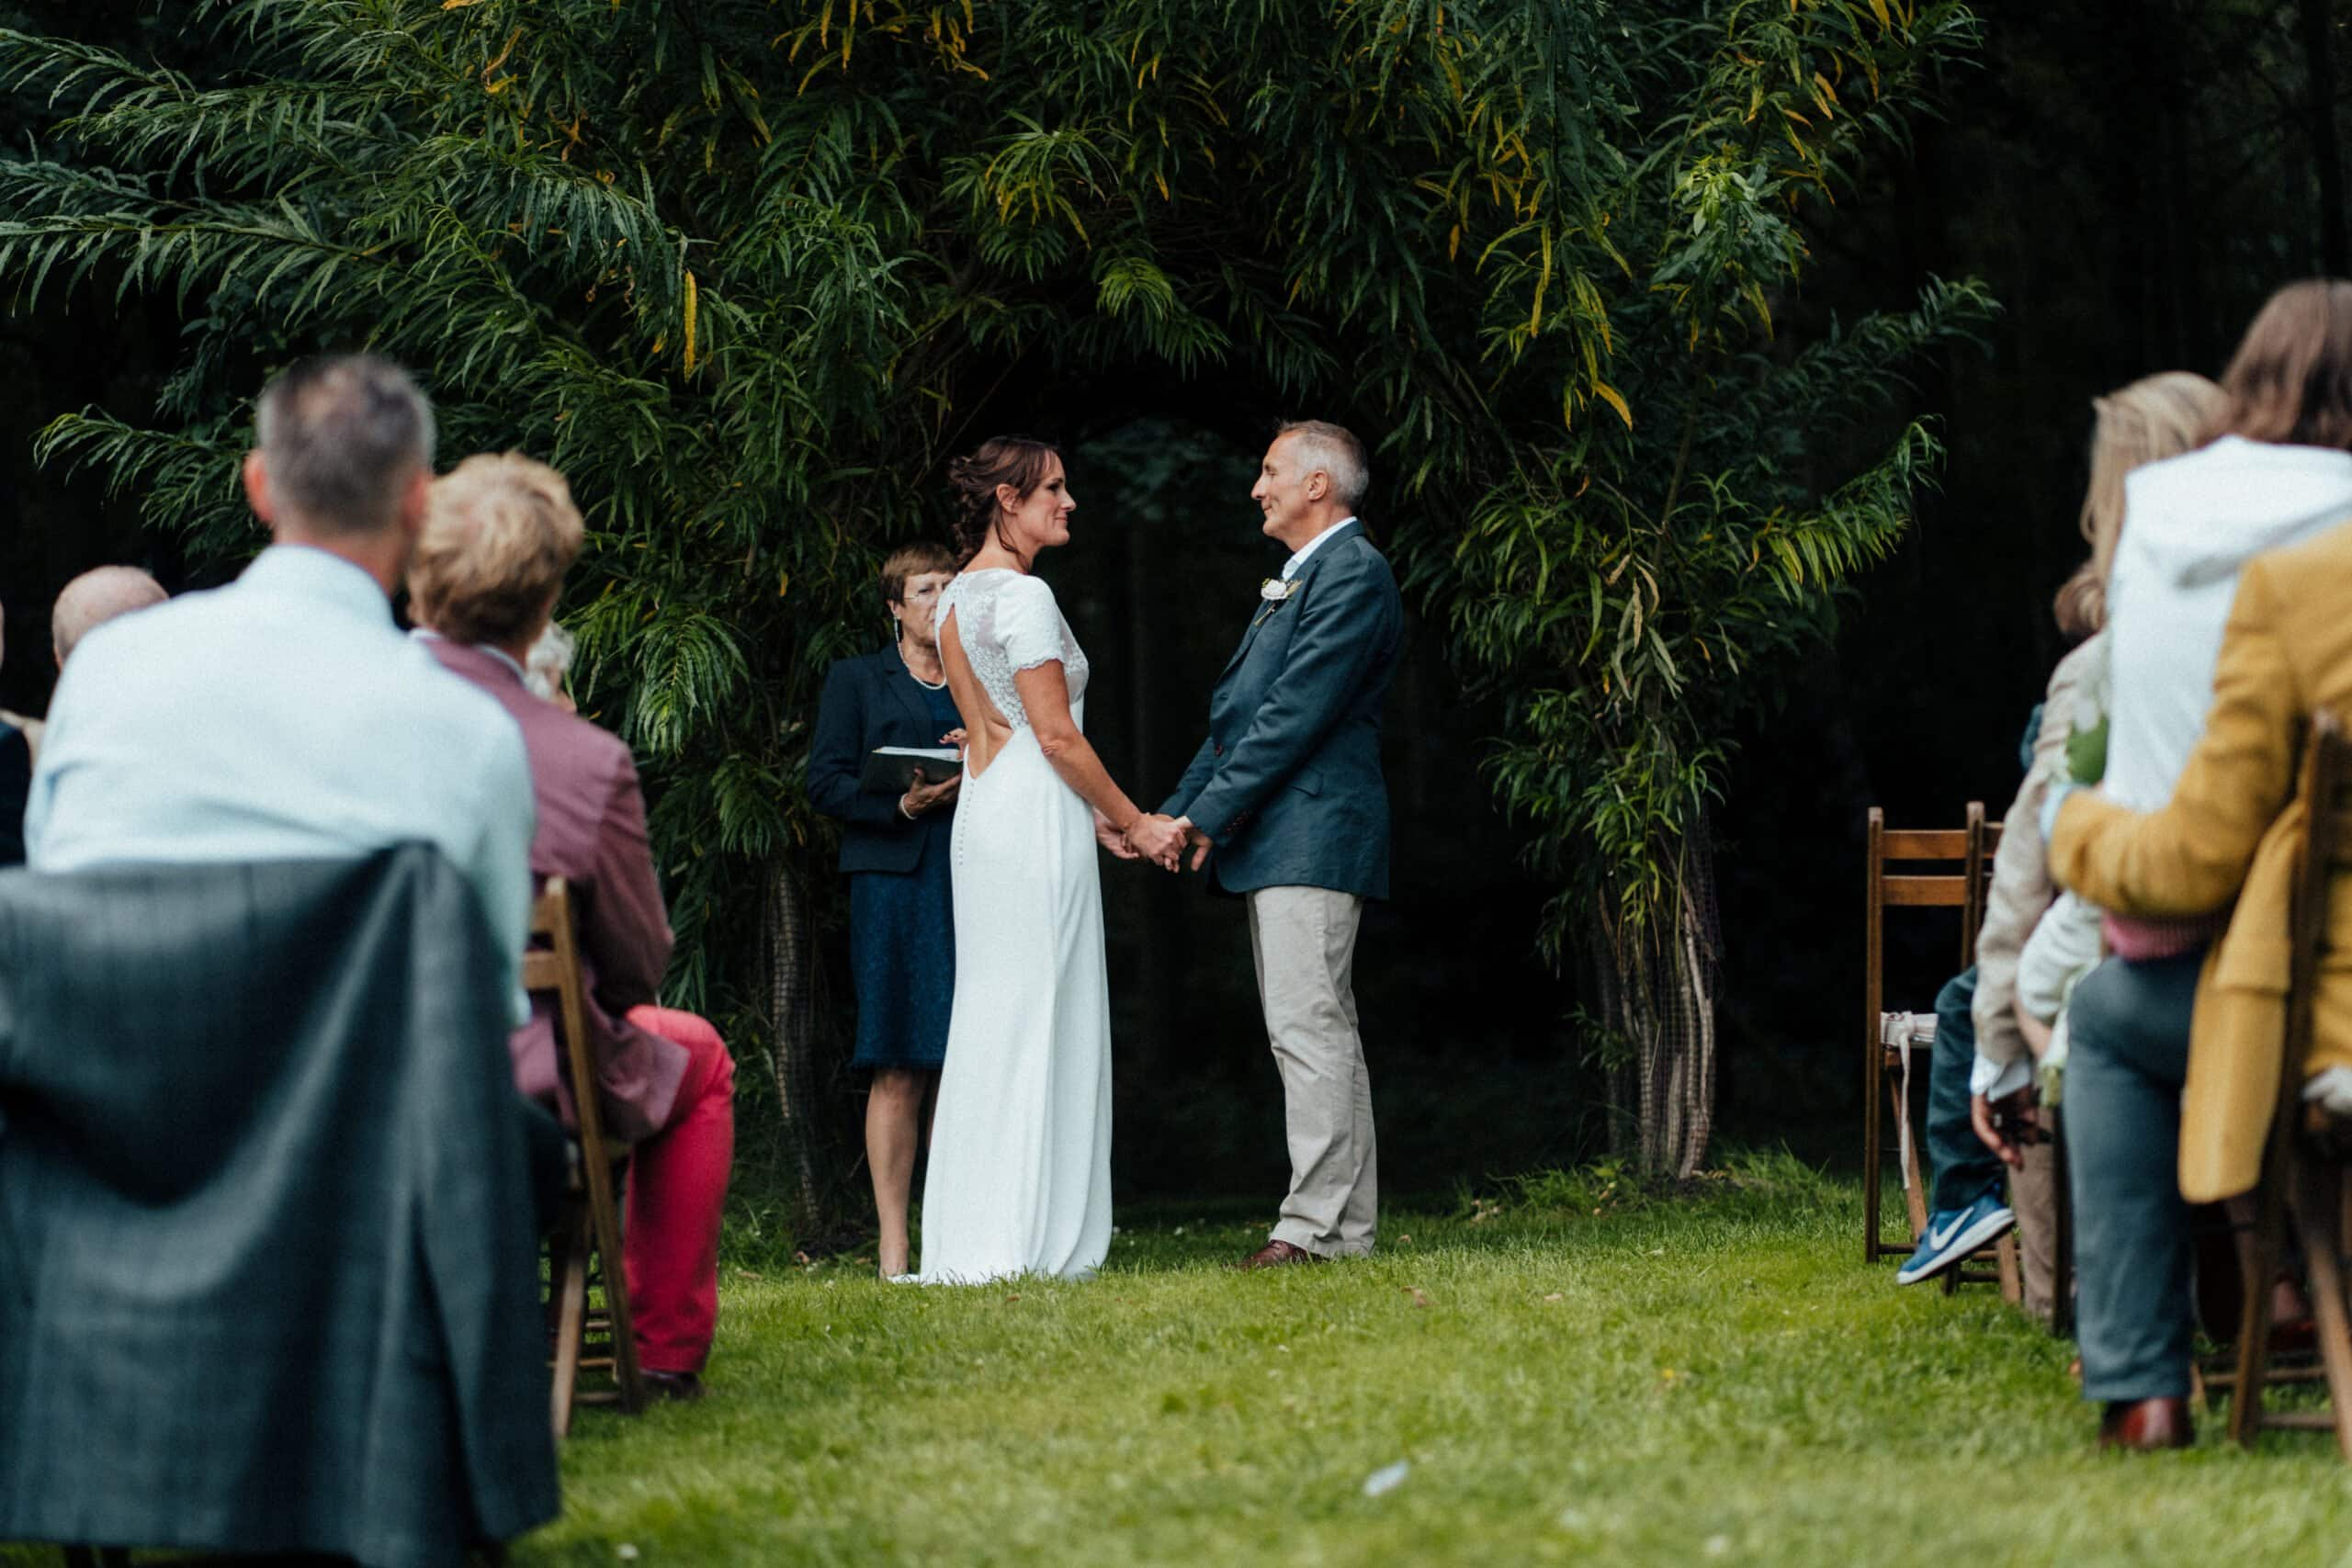 Wedding ceremony in woodland at Chaucer Barn